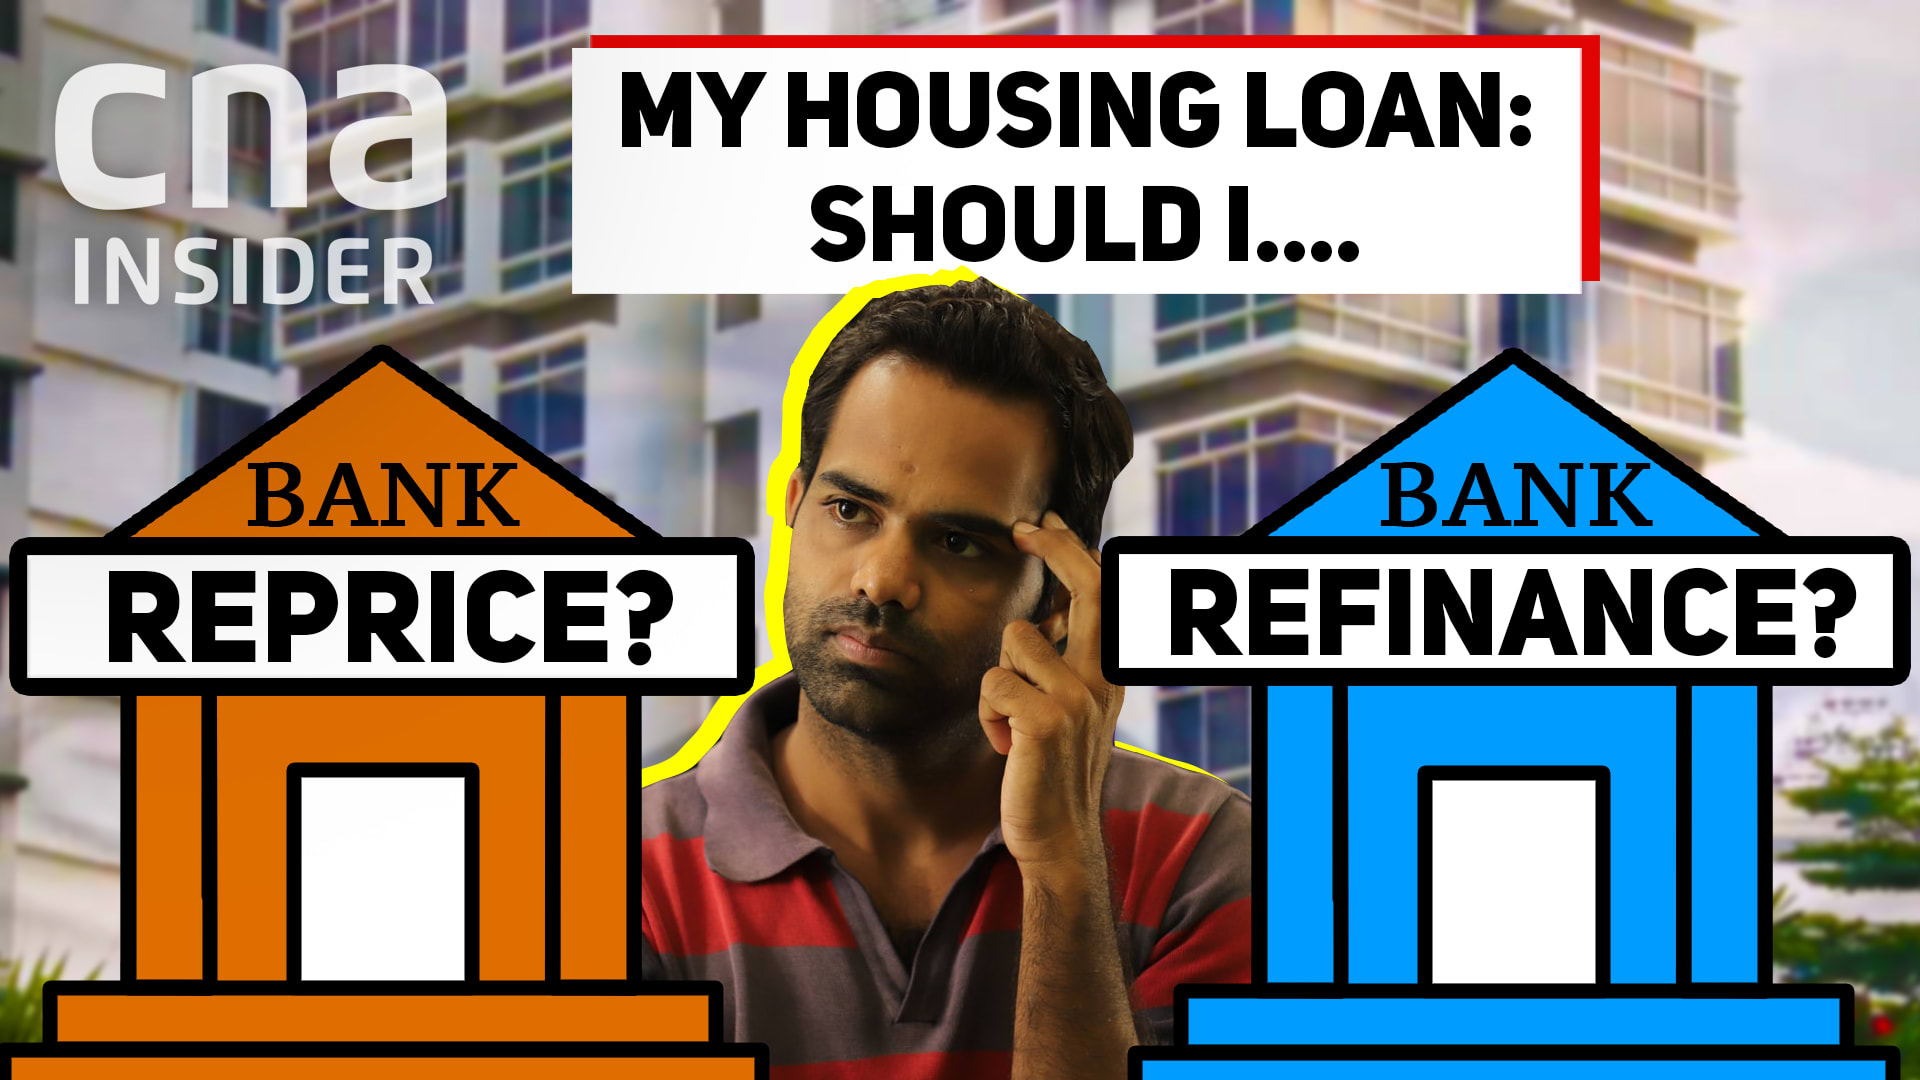 Should I reprice or refinance my housing loan?